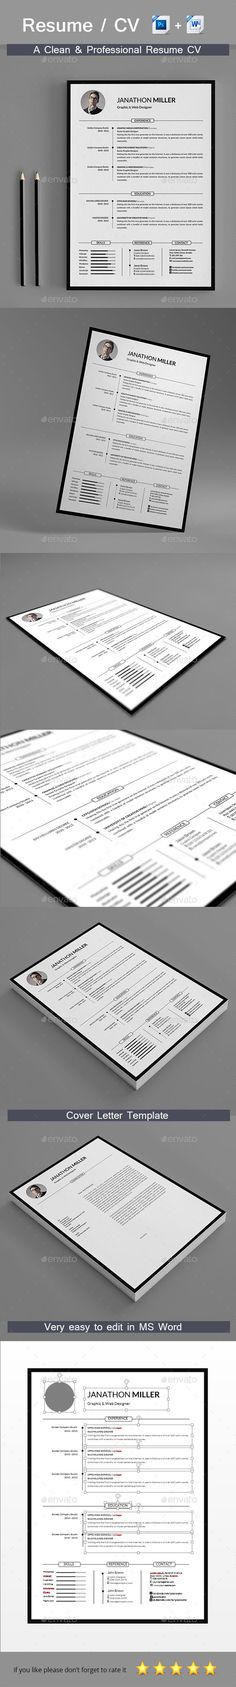 Creative Cv Template In Ms Word. Including Matching Cover Letter